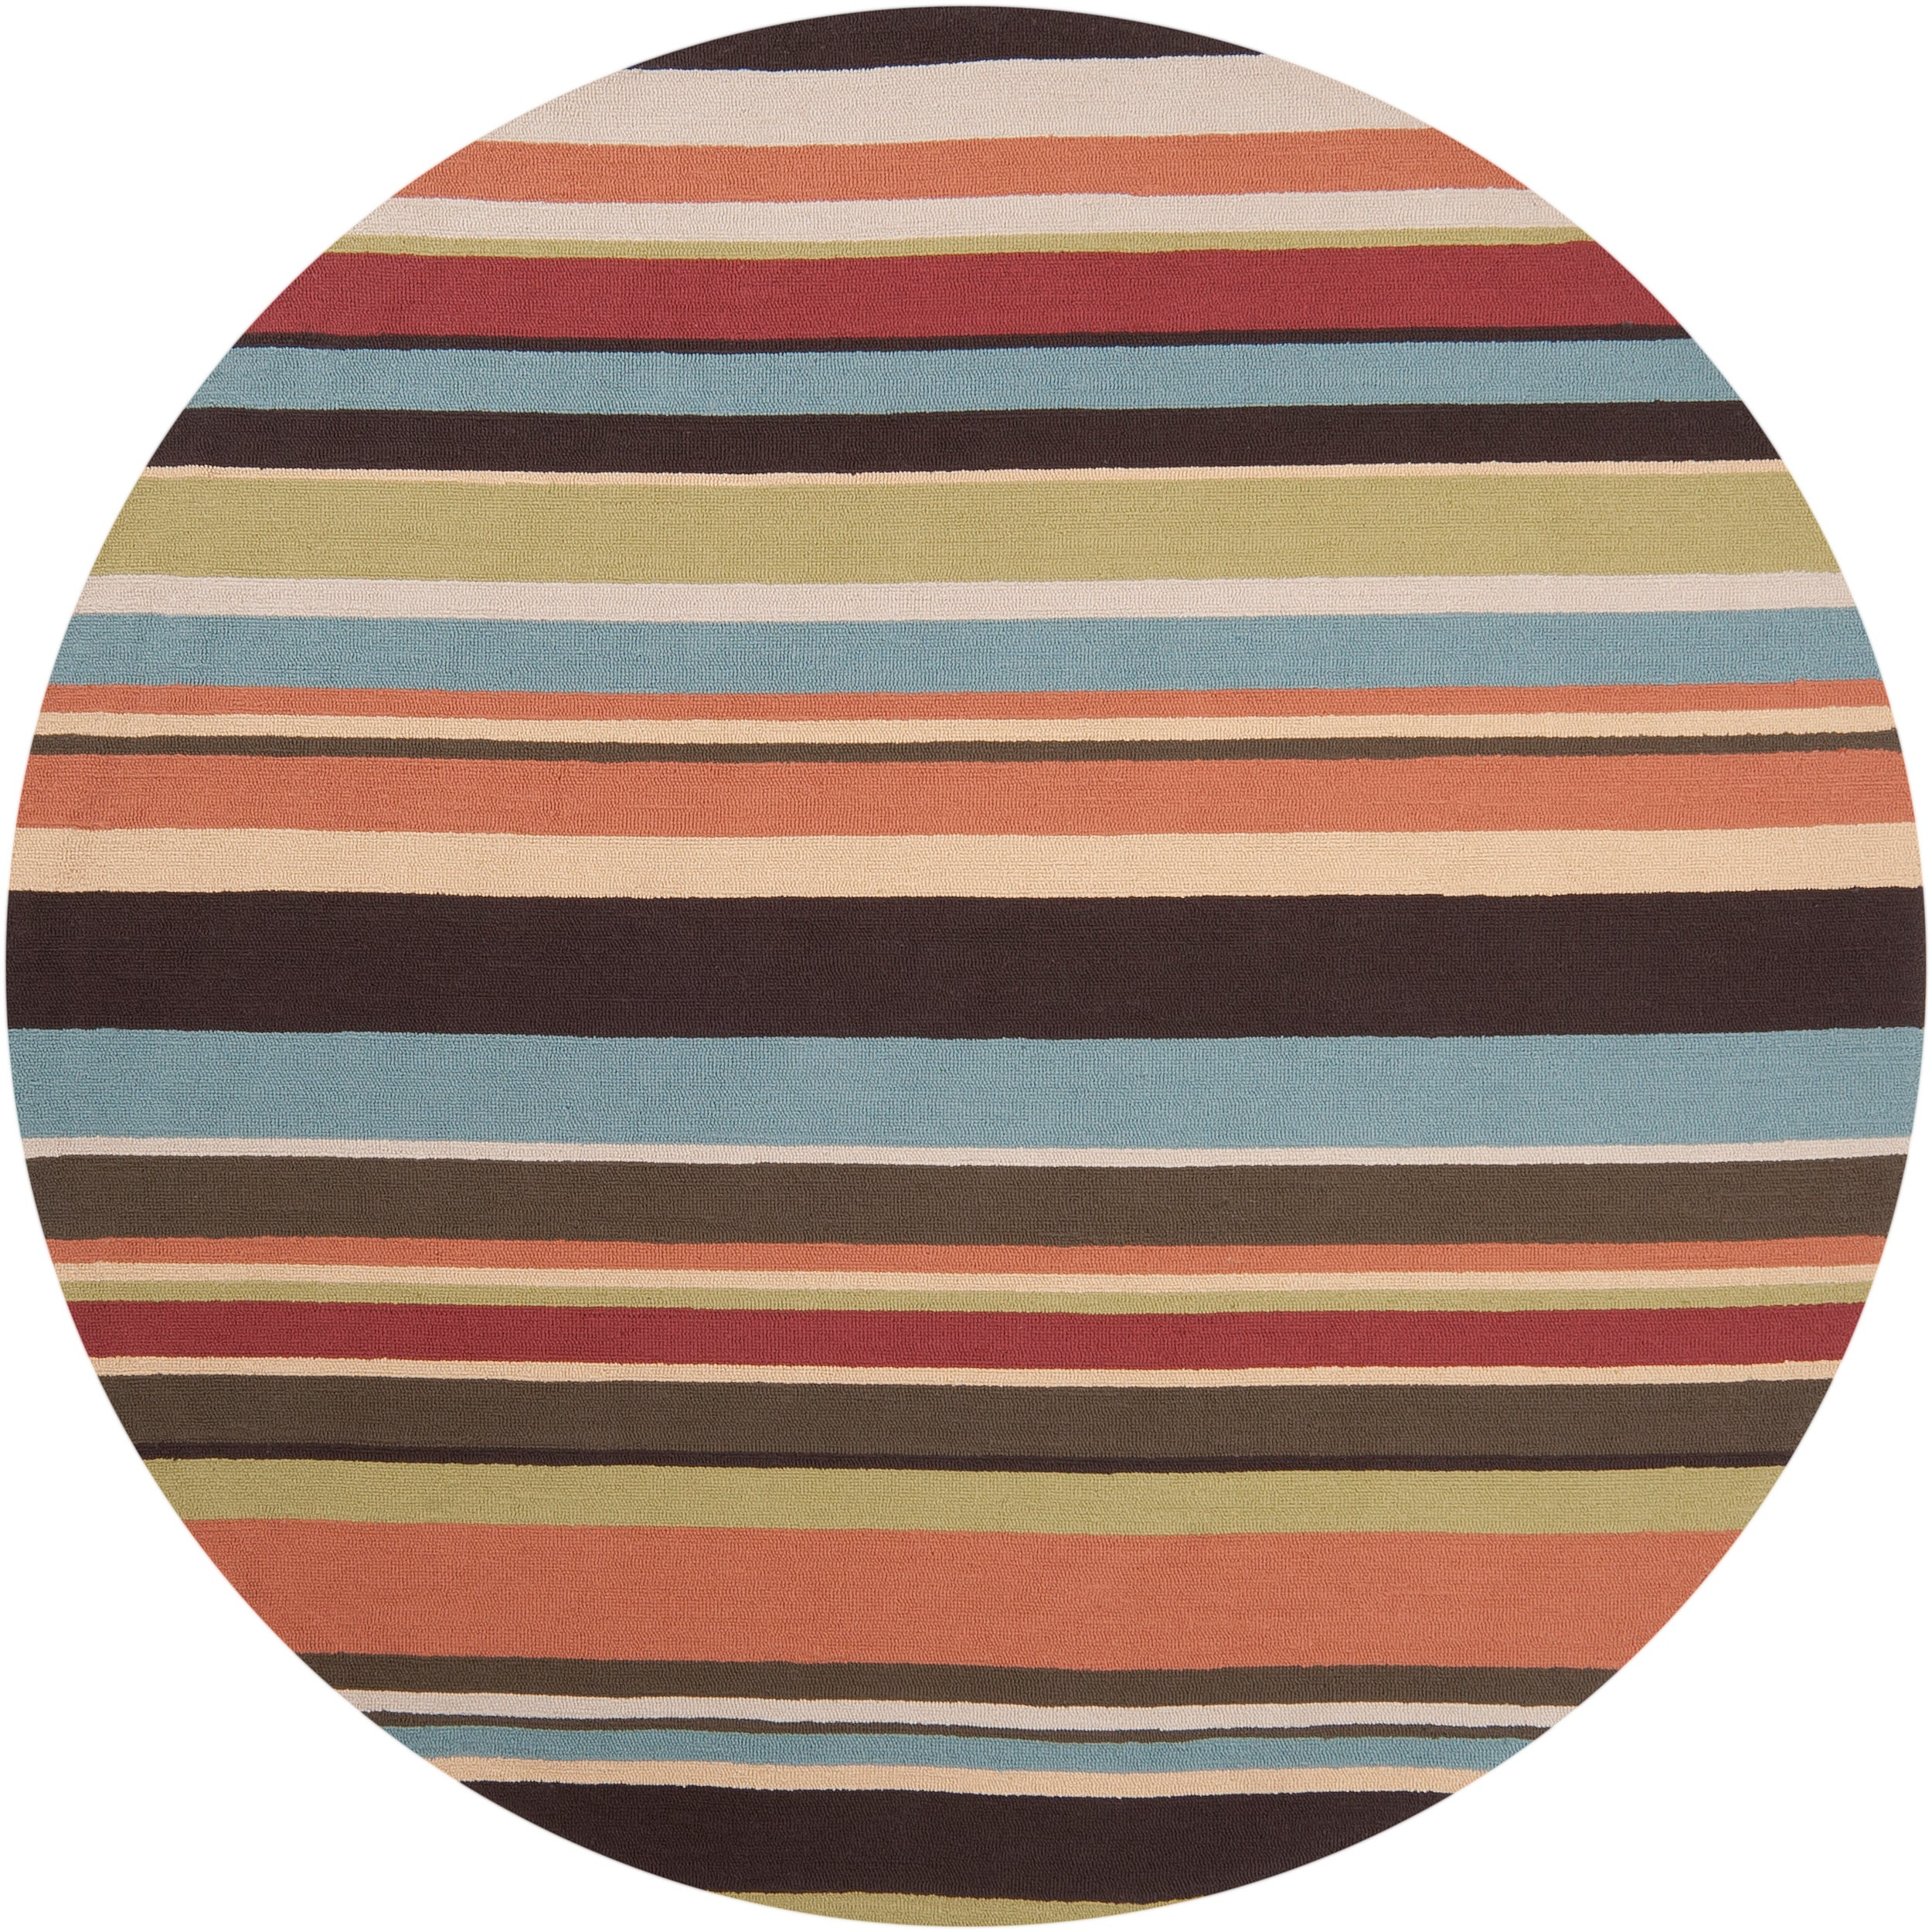 Hand hooked Multicolored Rancie Indoor Outdoor Stripe Rug